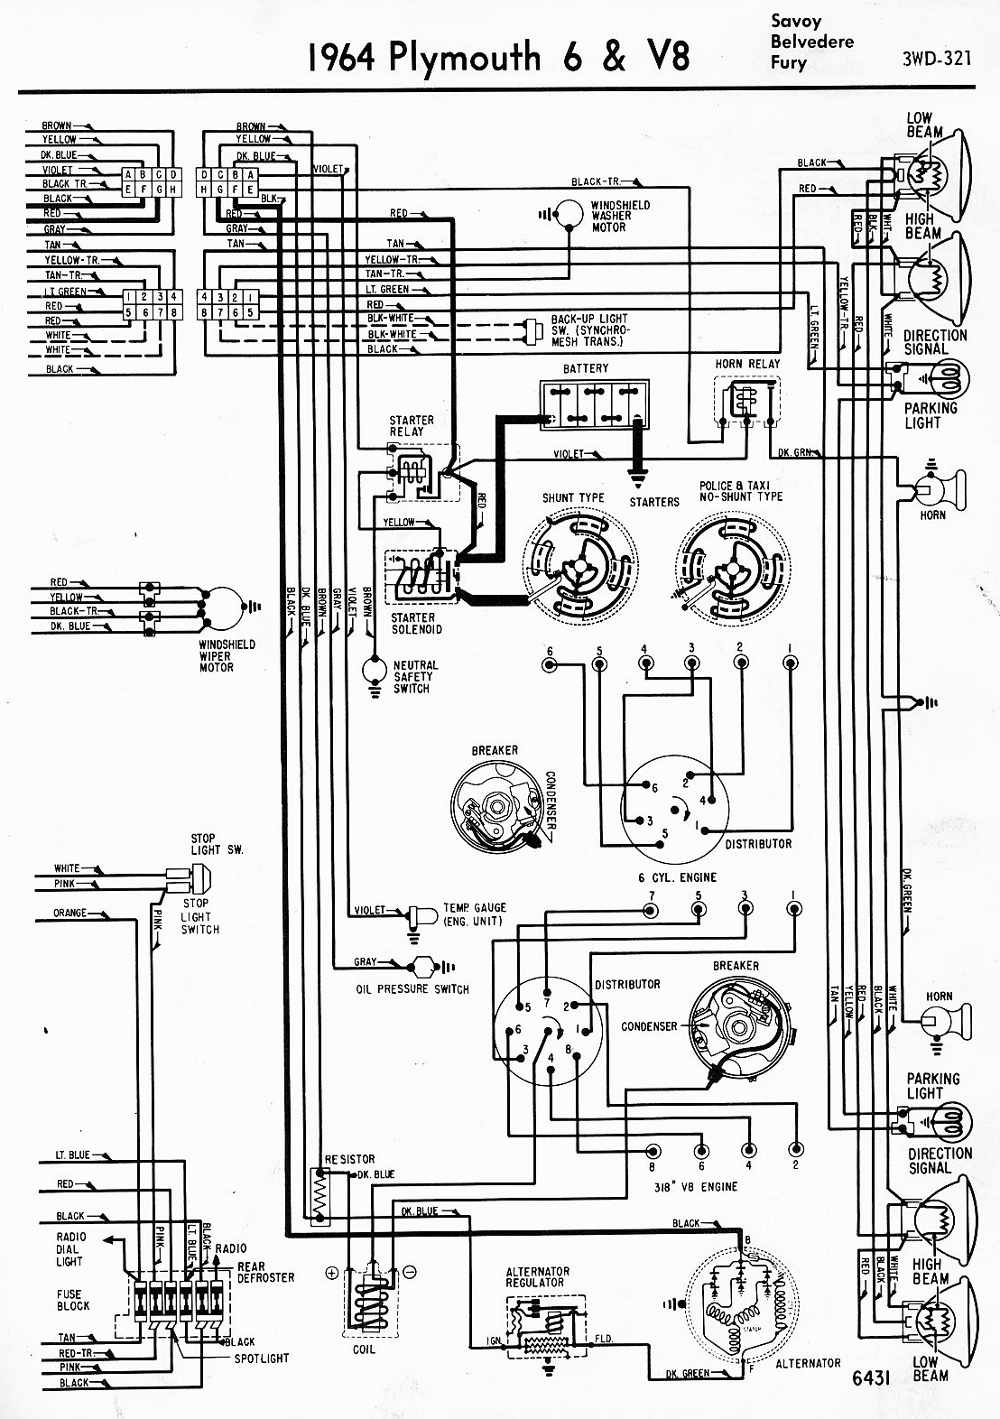 Plymouth Gtx Wiring Diagram | Wiring Diagram on amc gtx, orange gtx, mopar gtx, go wing 1971 gtx, mazda gtx, saleen gtx, custom gtx, 1969 pontiac gtx, craigslist 1971 gtx, roadrunner gtx,